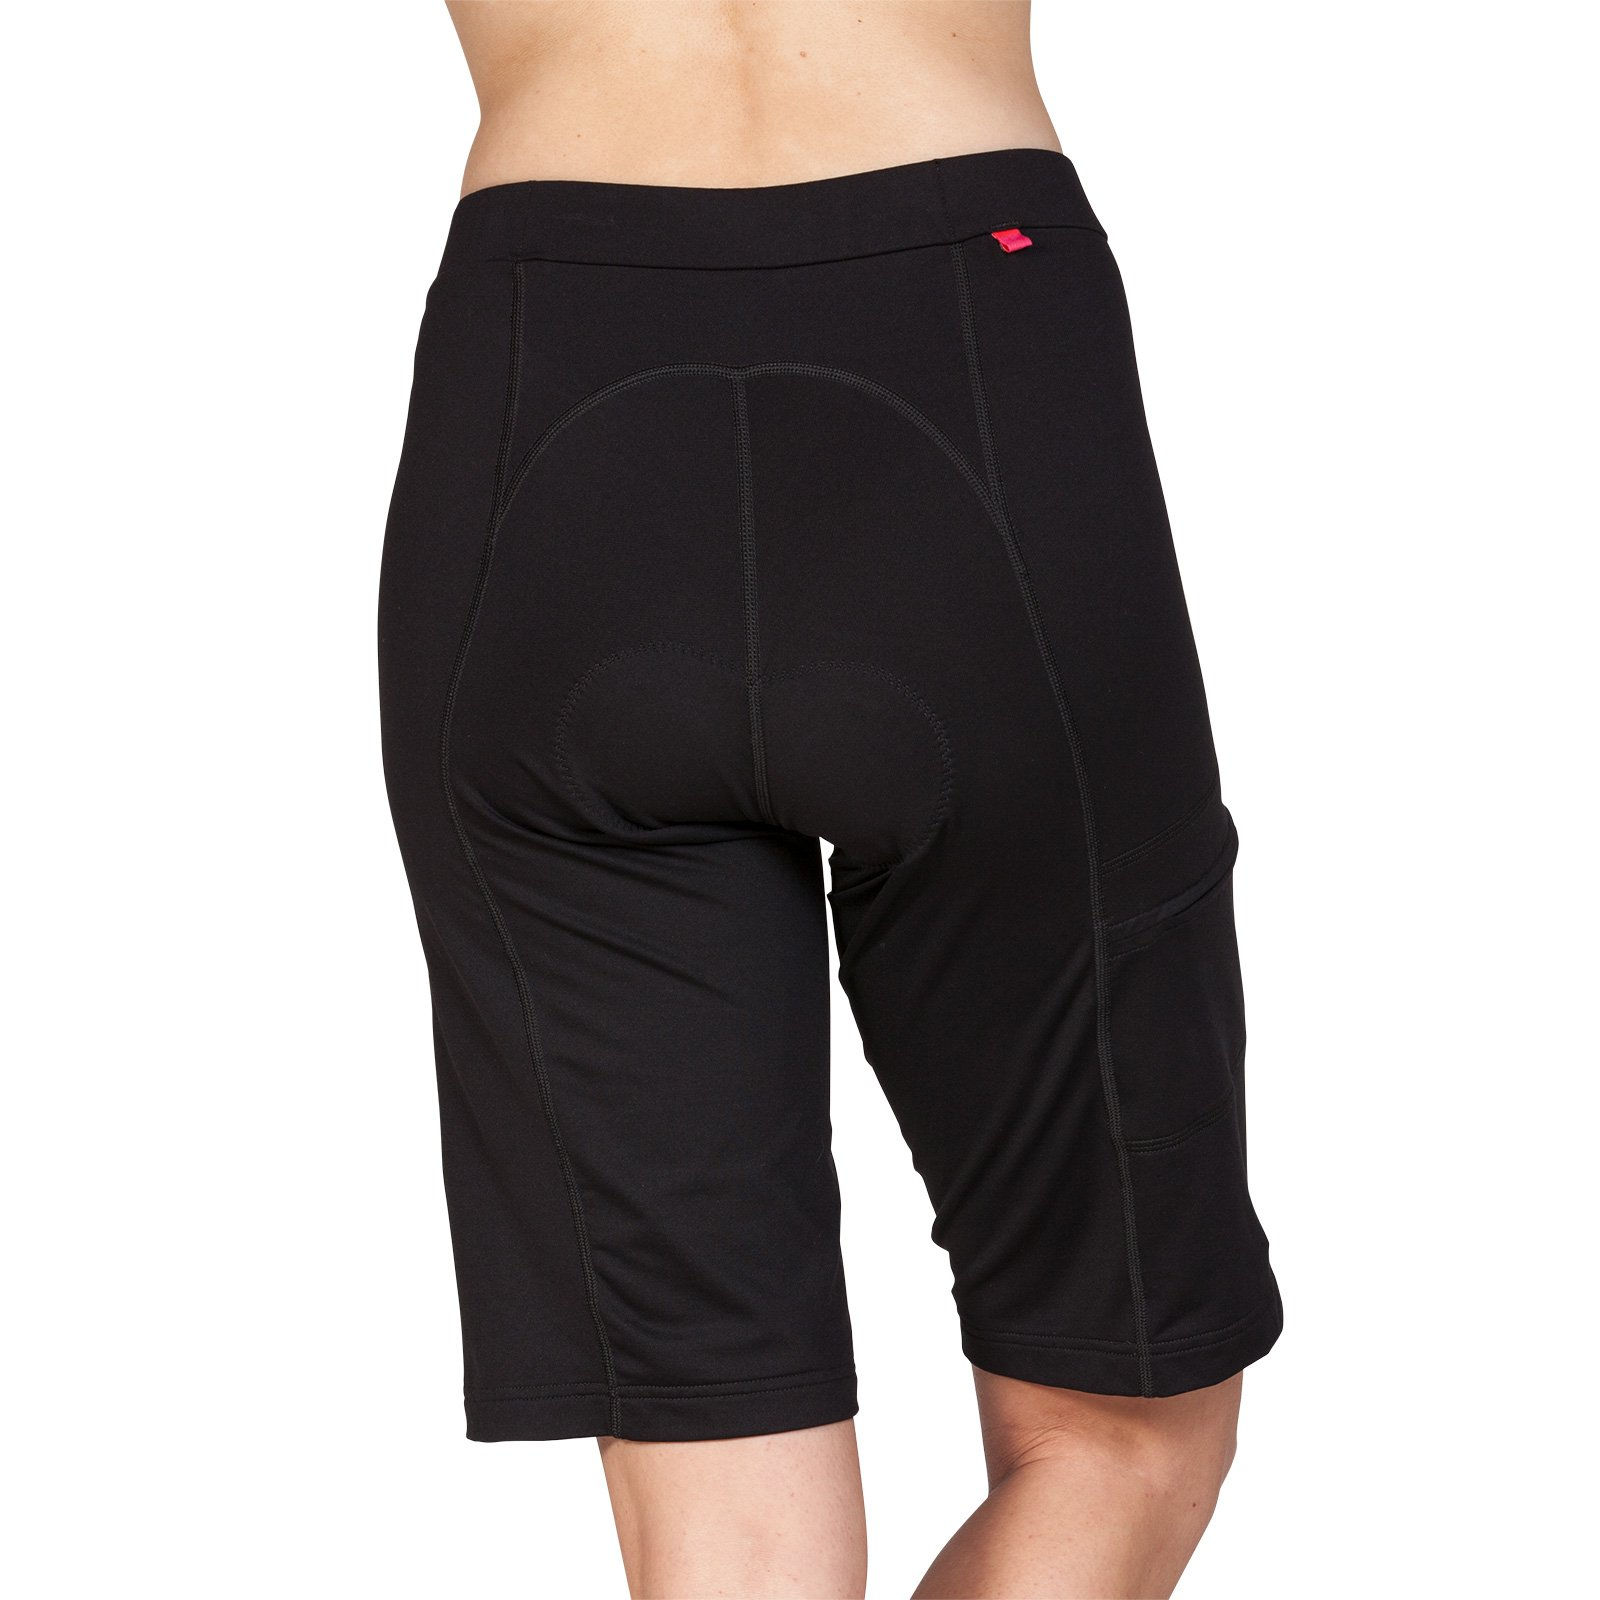 Terry Liberty Bike Shorts for Women - Loose-fit Leg Elastic-Free Opening Breathable Moisture Wicking Fabric – Black – X Large by Terry (Image #3)